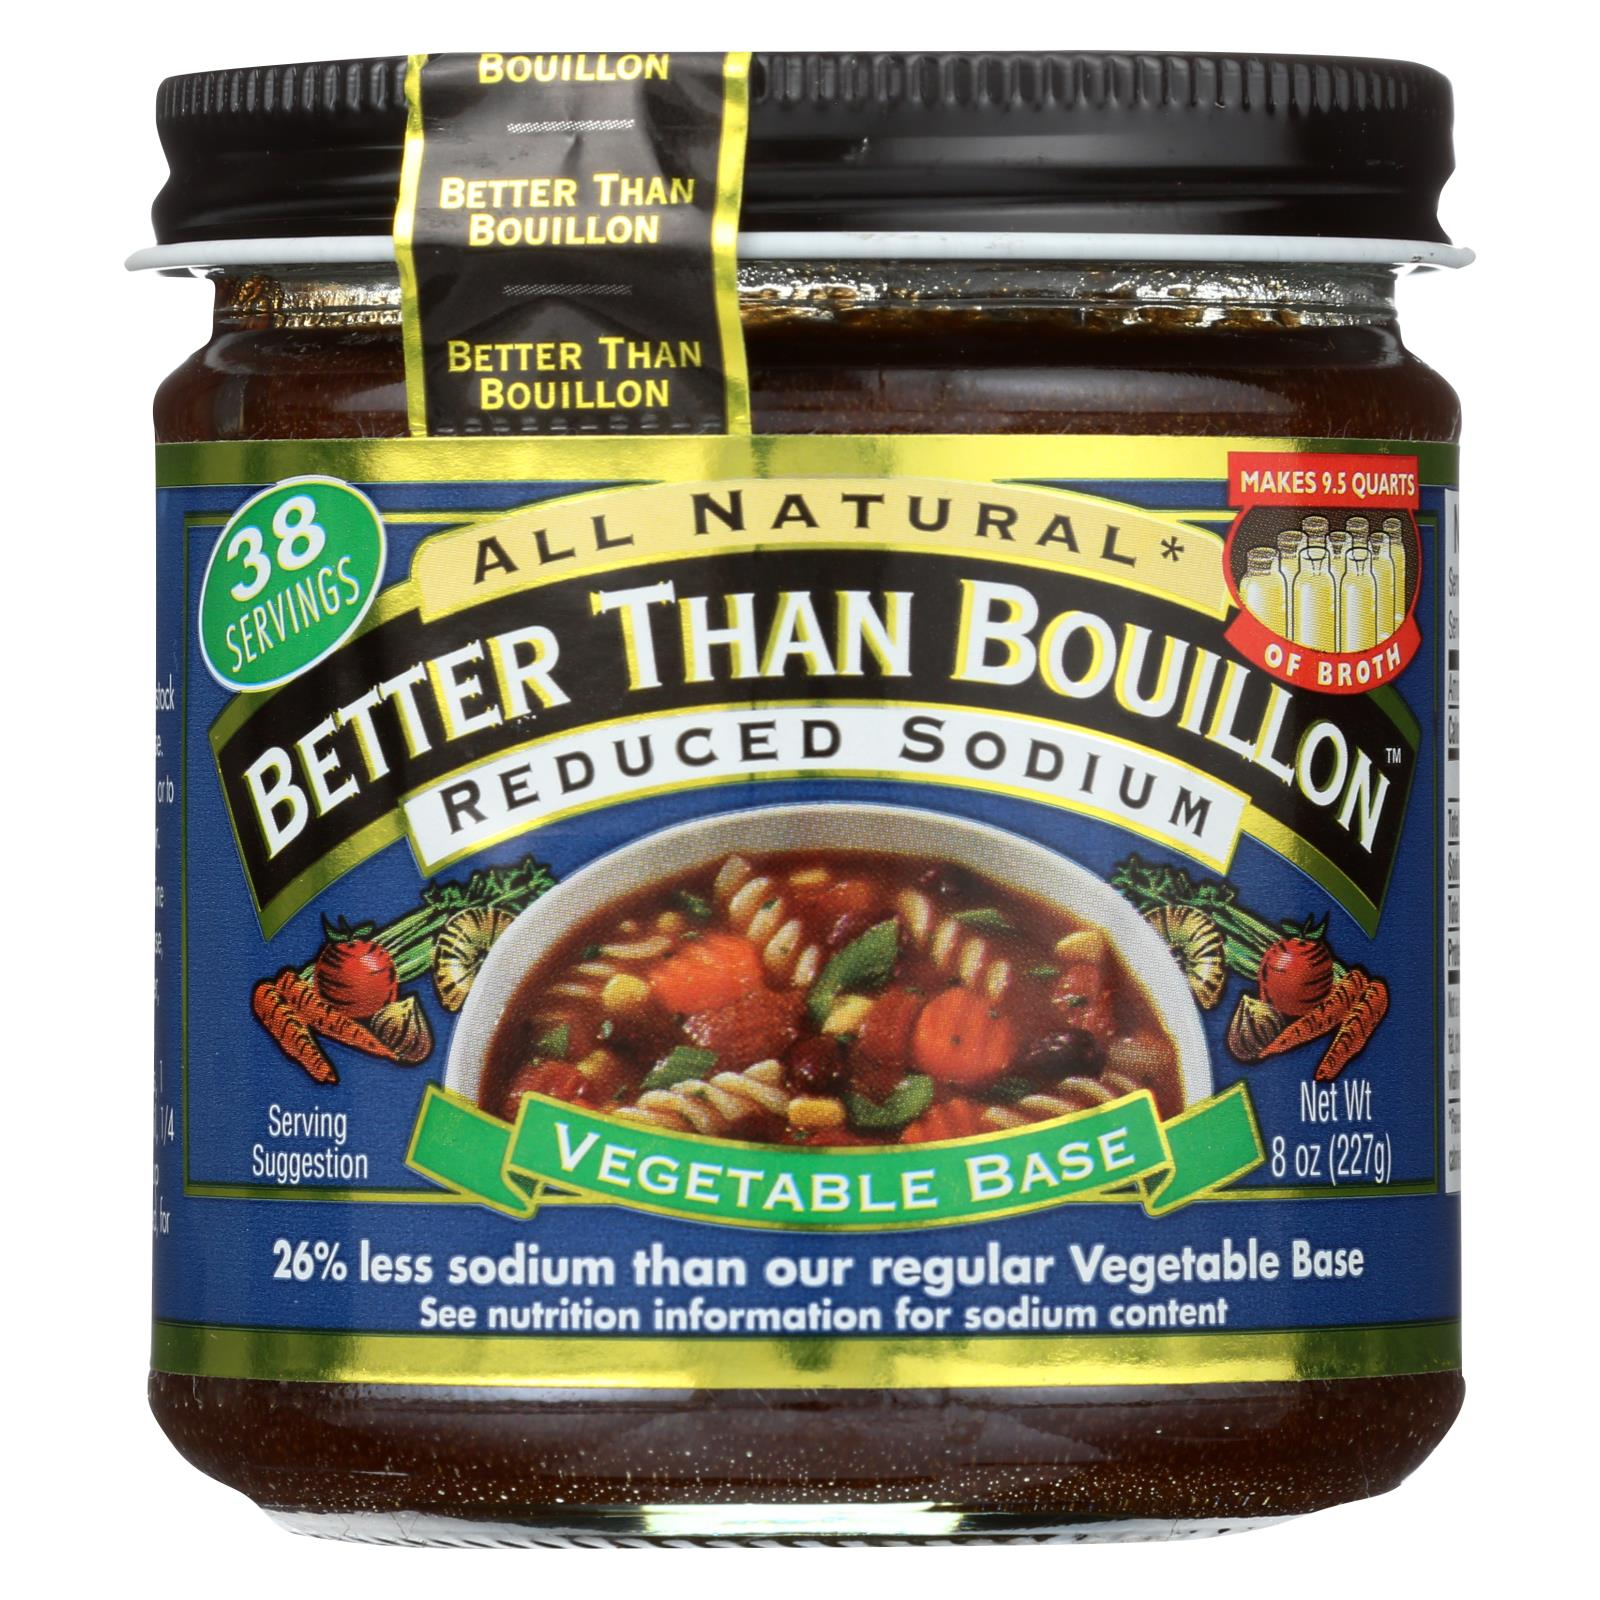 Better Than Bouillon Seasoned Vegetable Base - Reduced Sodium - Case Of 6 - 8 Oz. HG0277426